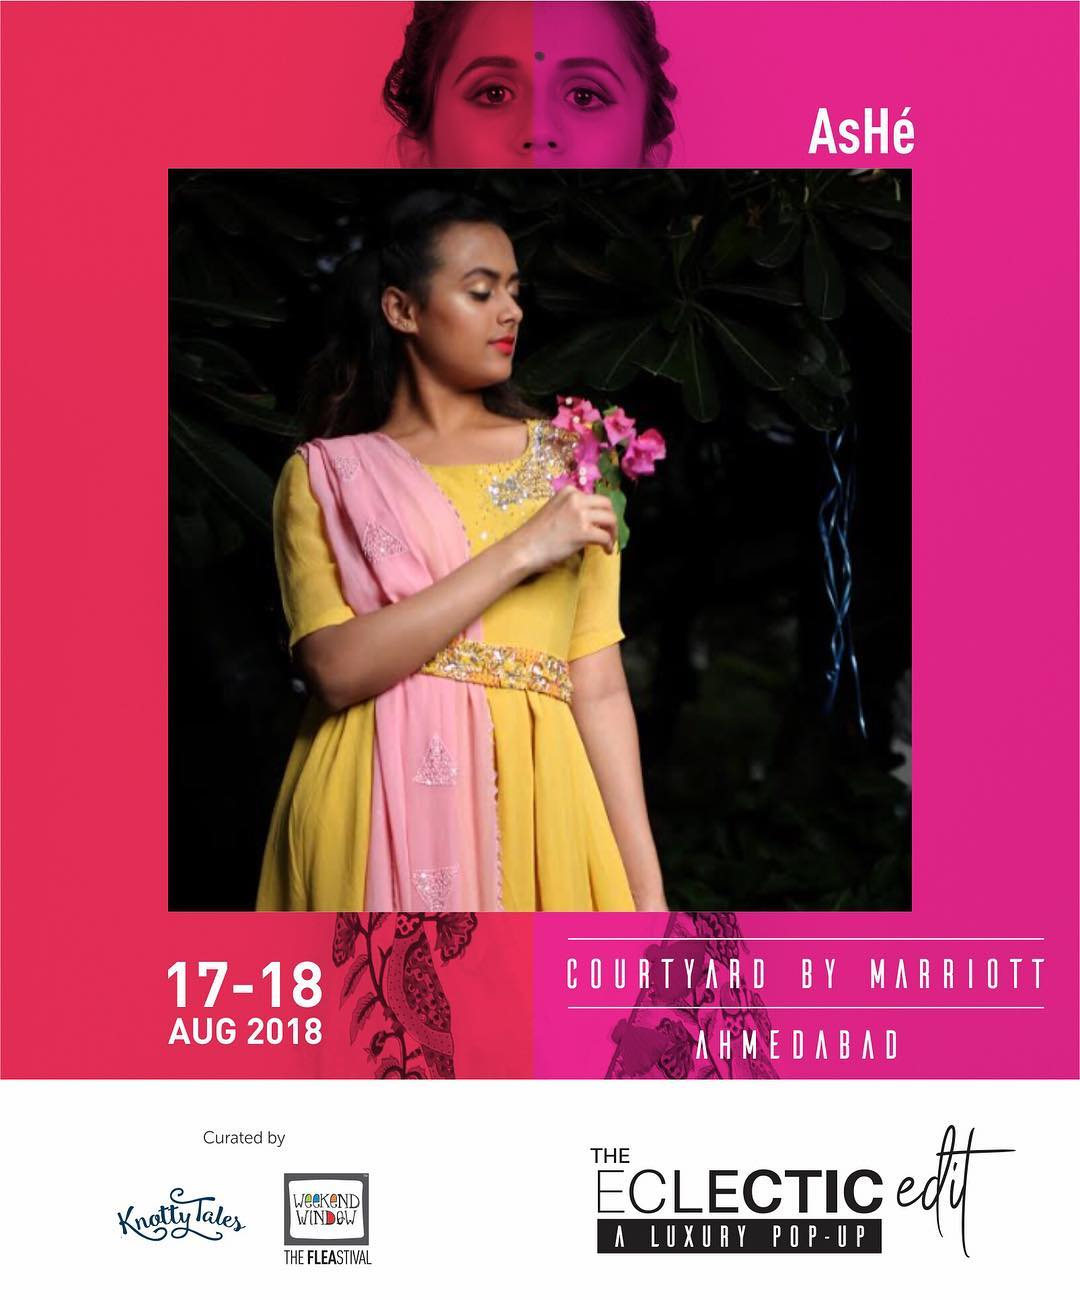 @ashebyashruti.heena - a label by Ashruti and Heena is a contemporary fashion brand specializing in handcrafted Indian Occasion Wear for the confident, global woman. Check out their festive collection, specially handcrafted for the women of power.  65+ brands showcasing at The Eclectic Edit - a curated luxury pop-up by Knotty Tales & Weekend Window  #AsHéfestivehues #ootd #instastyle #whatiwore #weekendstyle #detailing #tassel #colourpop #sundress #tieup #whitedress #handloom #flatlay #instalike #trendy #theeclecticedit #knottytales #weekendwindow